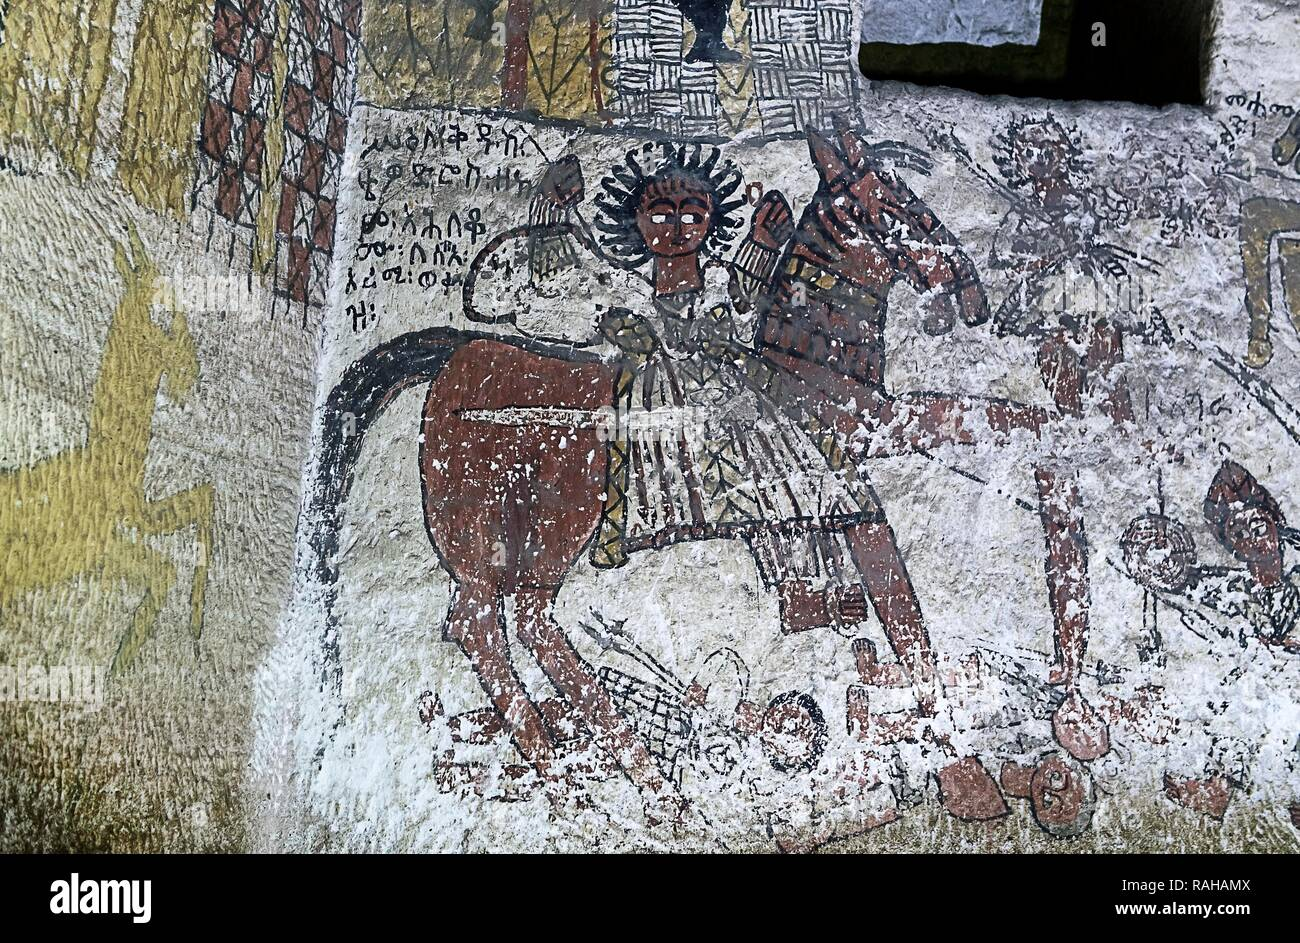 Saint Theodor of the Romans riding a horse kills the Muslim enemies of the Christians, fresco in the rock church Yohannes - Stock Image